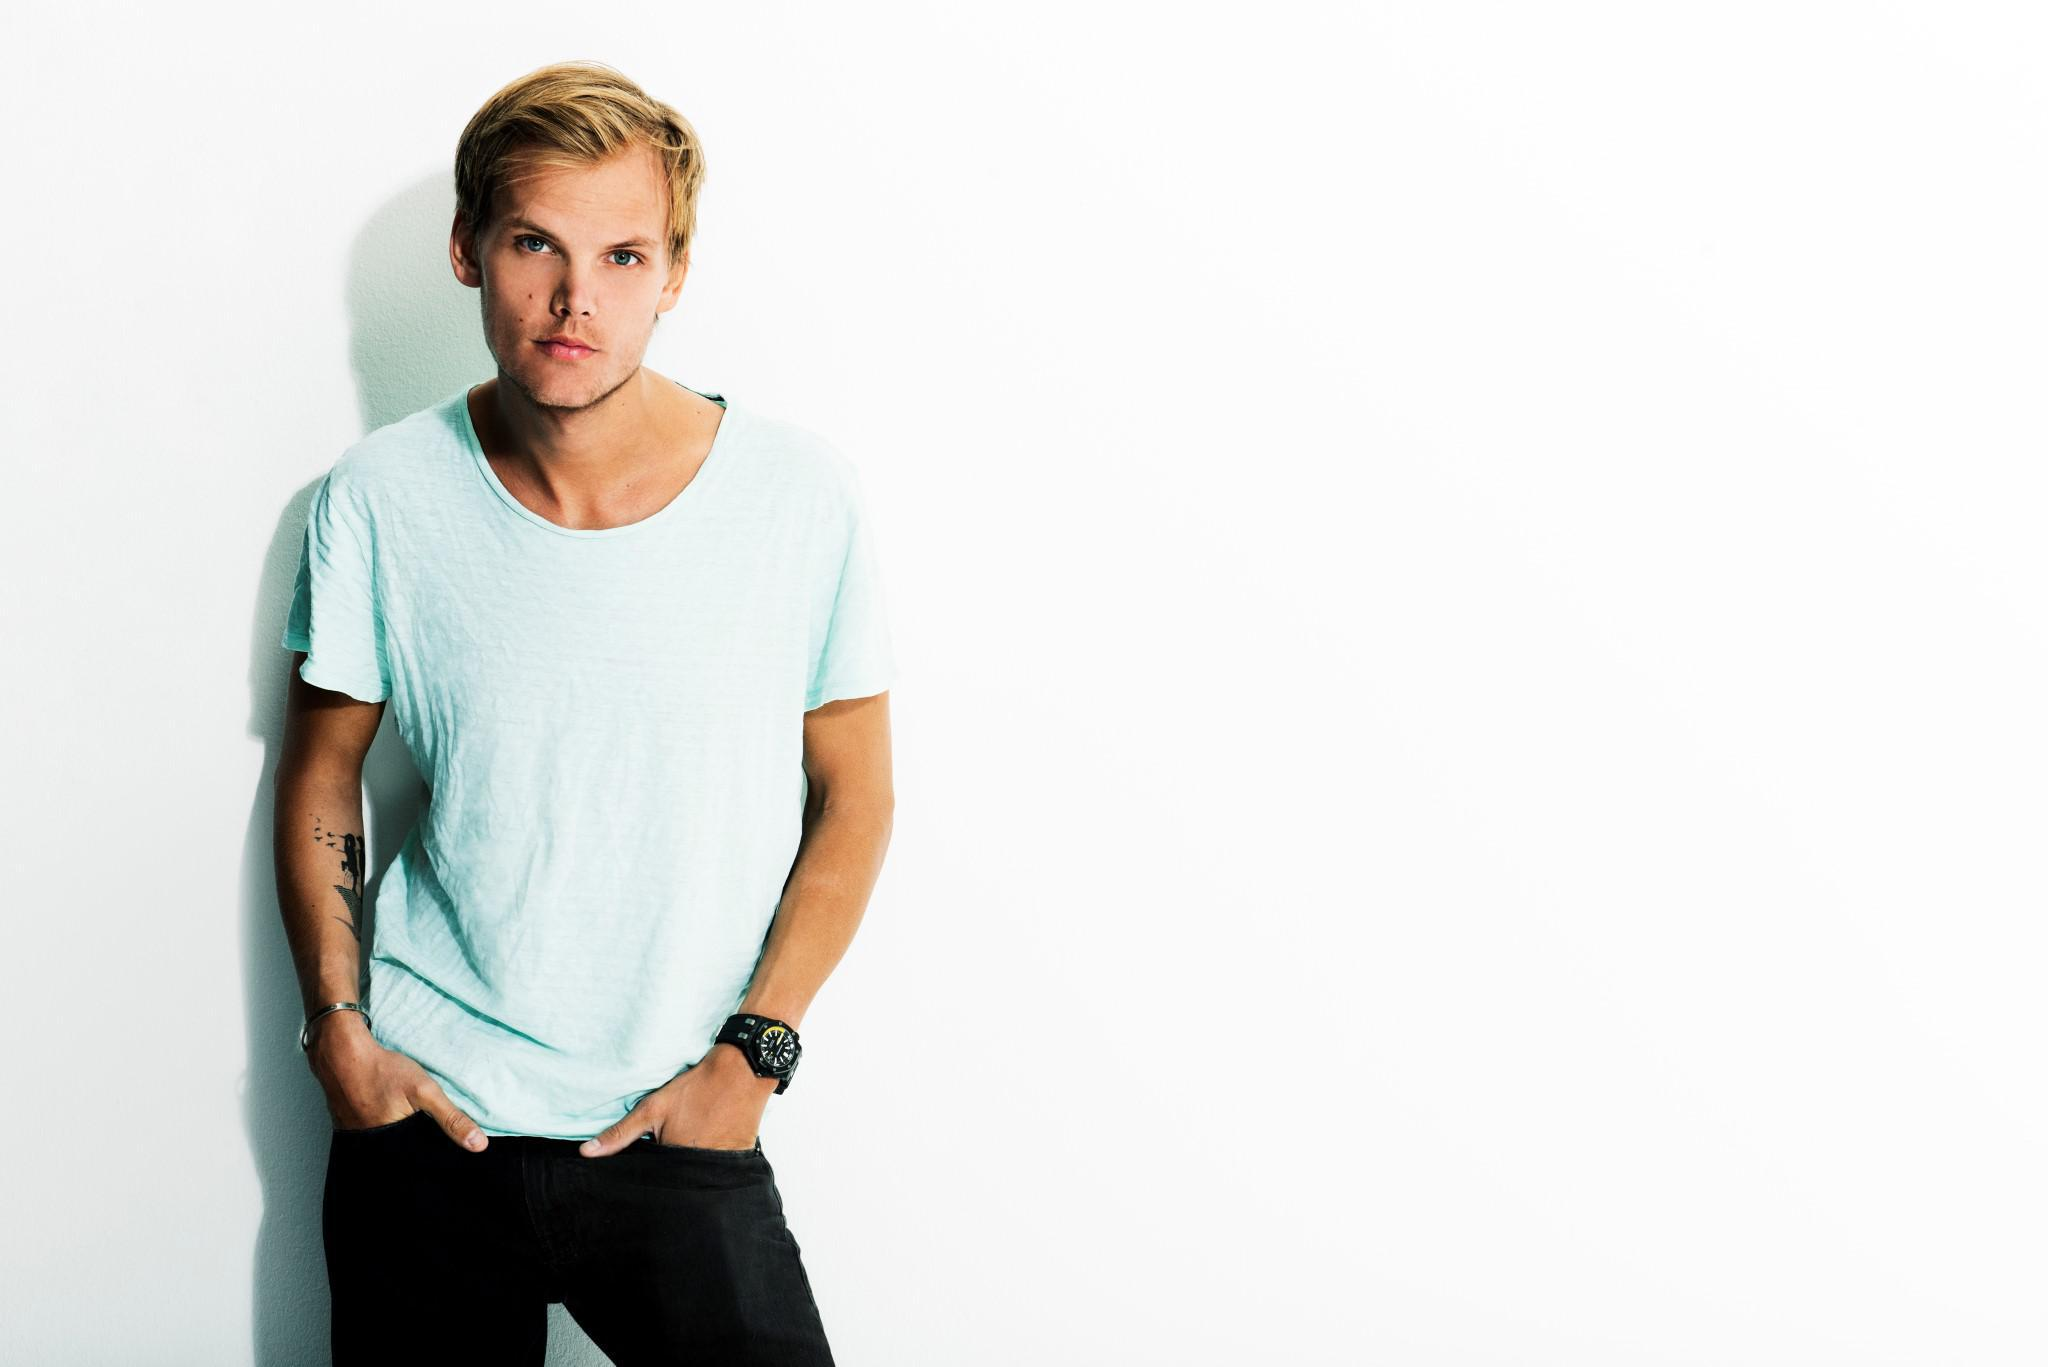 avicii wallpapers images photos pictures backgrounds